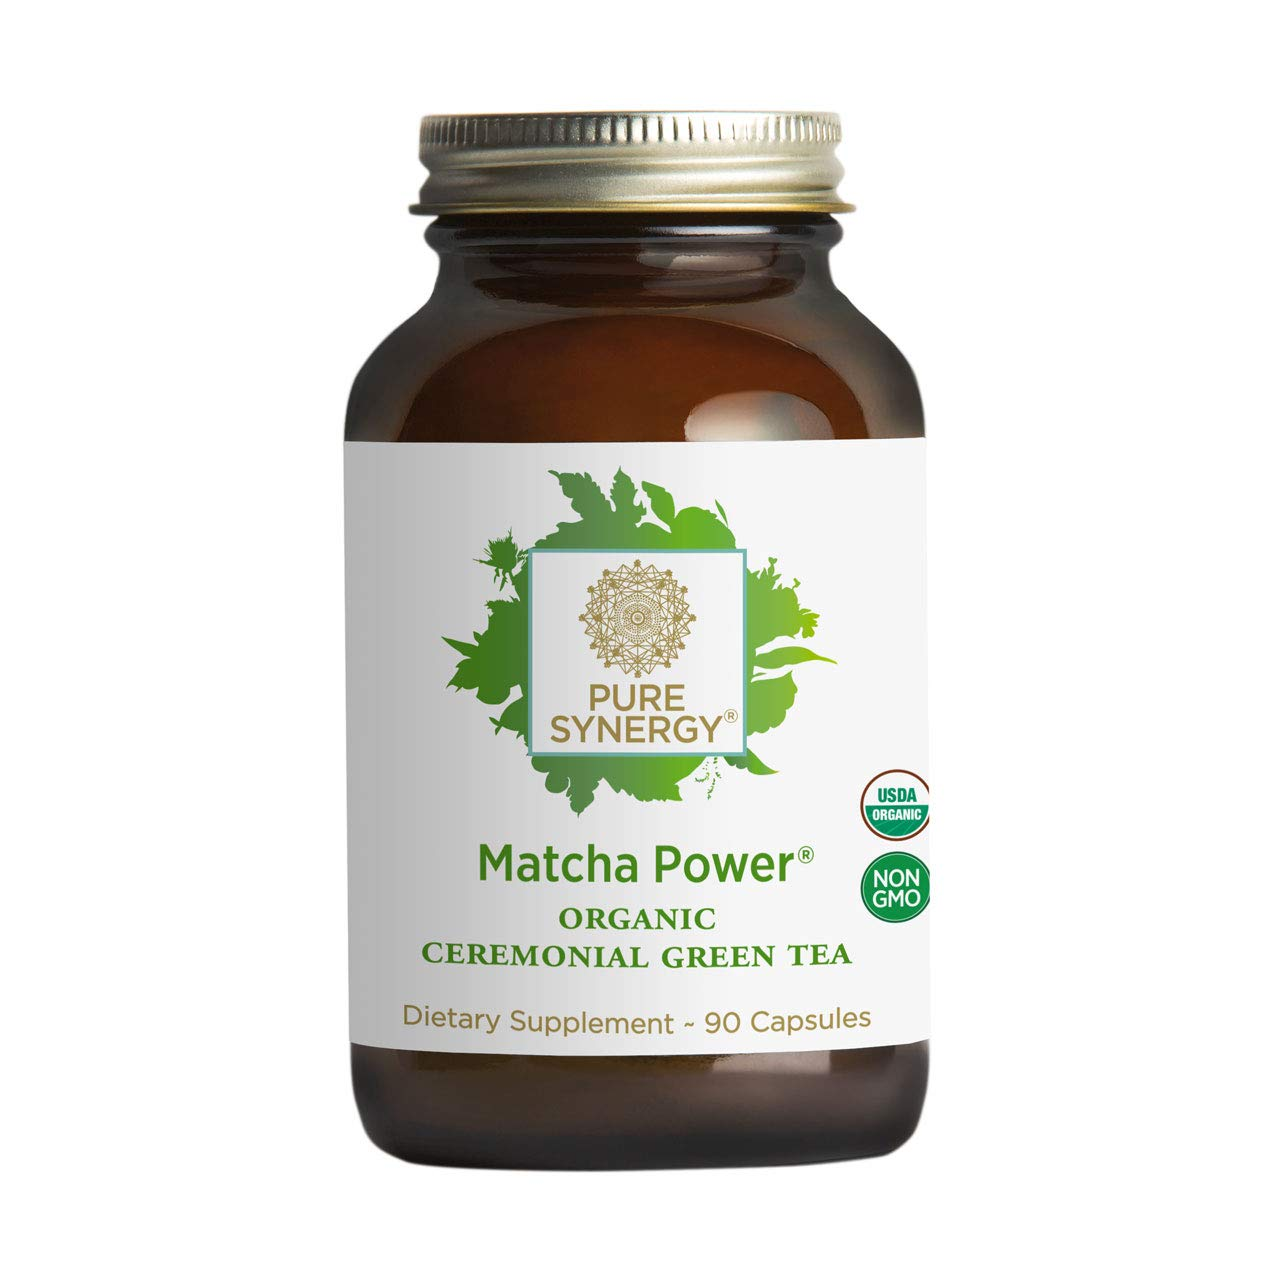 Pure Synergy USDA Organic Matcha Power (90 Capsules) Ceremonial Japanese Green Tea Convenient Capsules by Pure Synergy